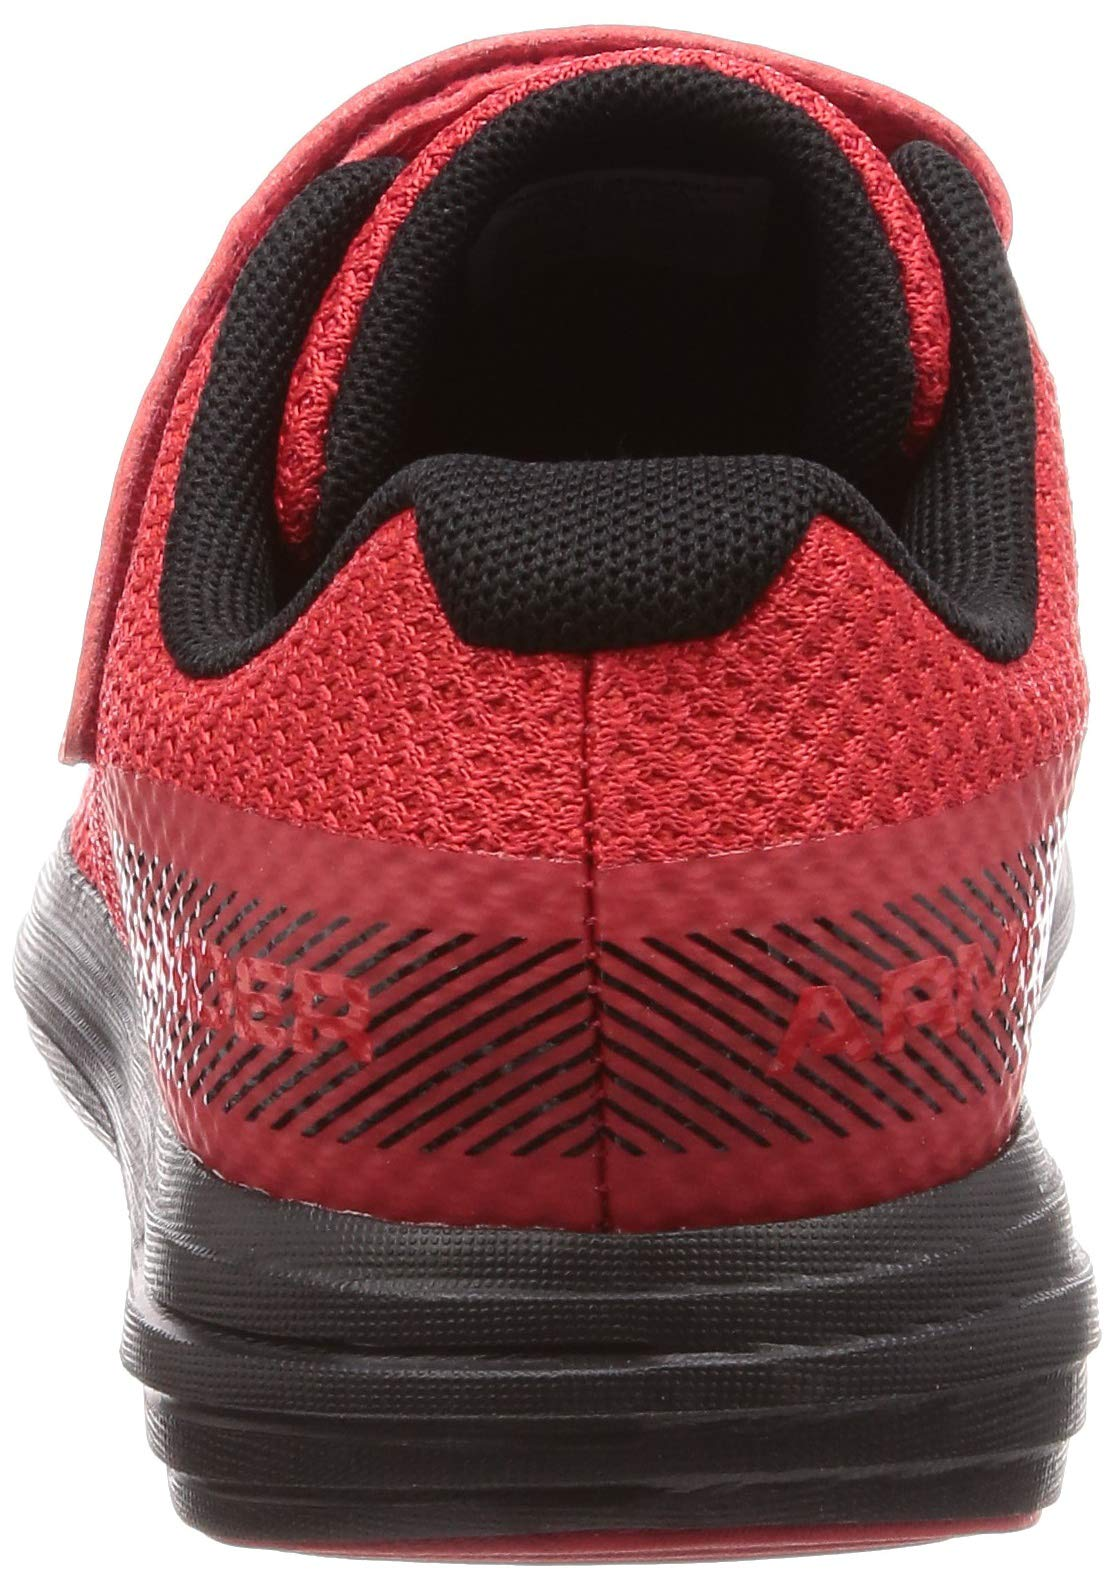 Under Armour Boys' Pre School Surge RN Alternate Closure Sneaker, Red (600)/Black, 3 by Under Armour (Image #2)